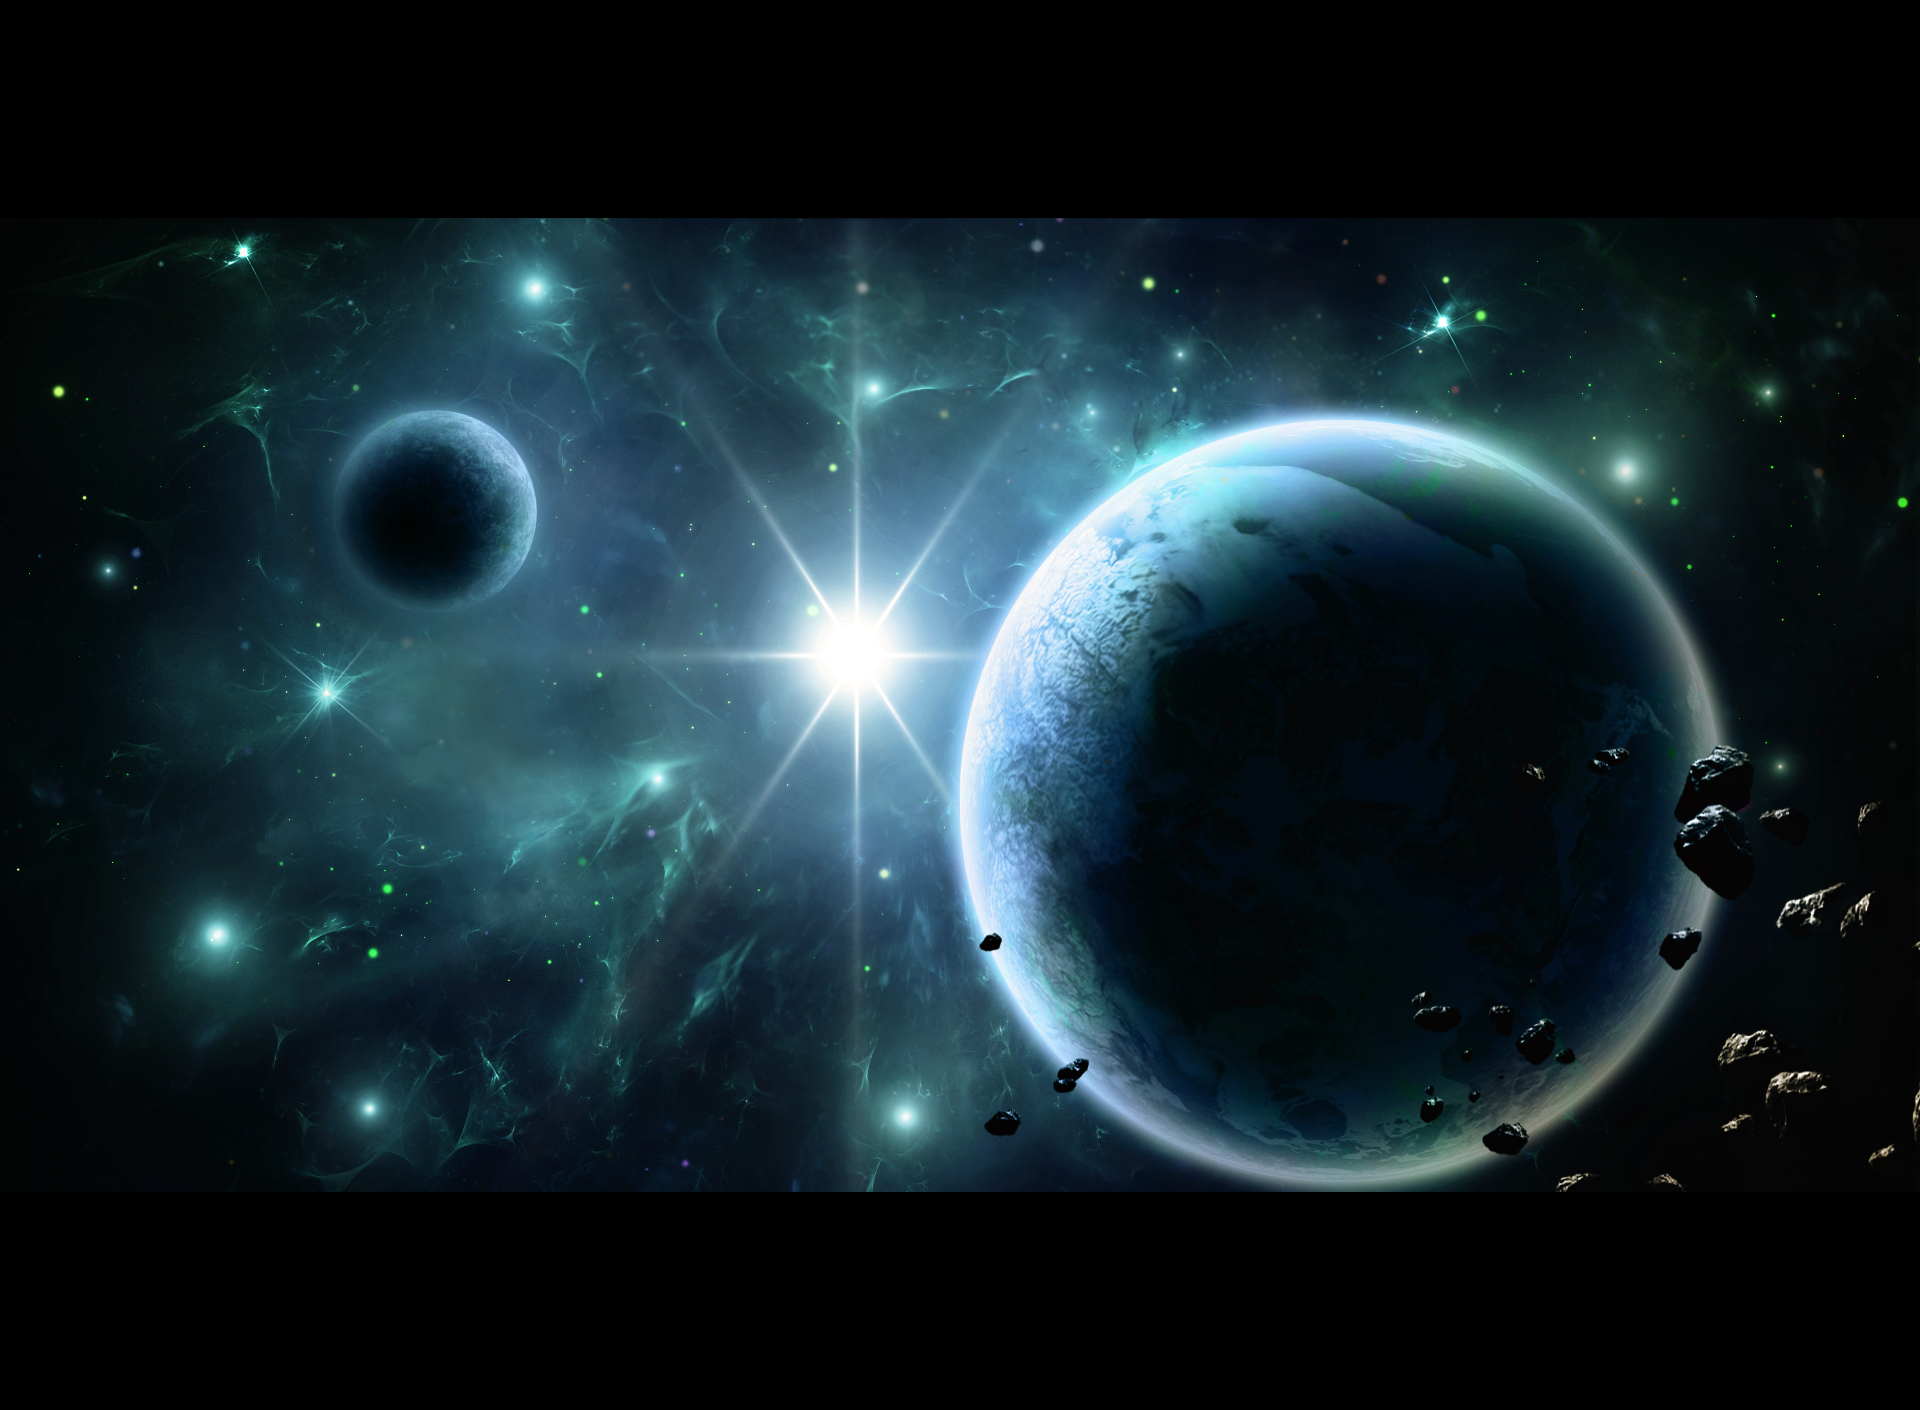 Fractal Space by xXKonanandPain on DeviantArt  Fractals In Space